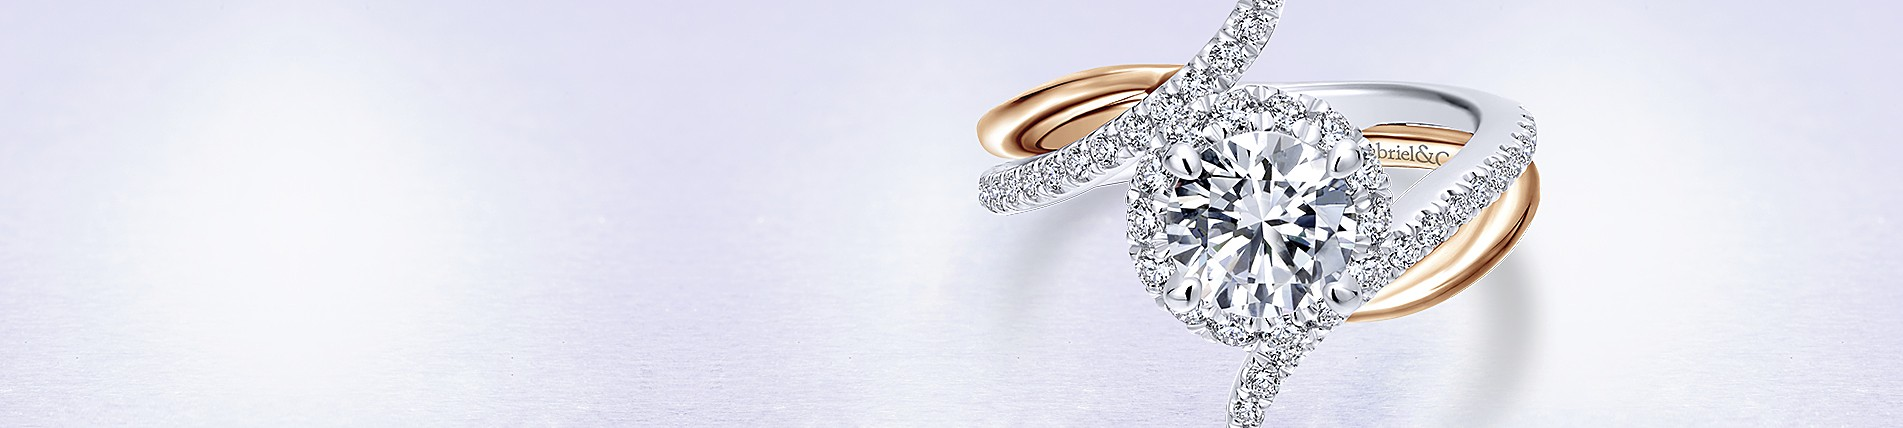 wedding goldsmiths jewellery rings the mccaul engagement and fine arris shop banner collection contemporary